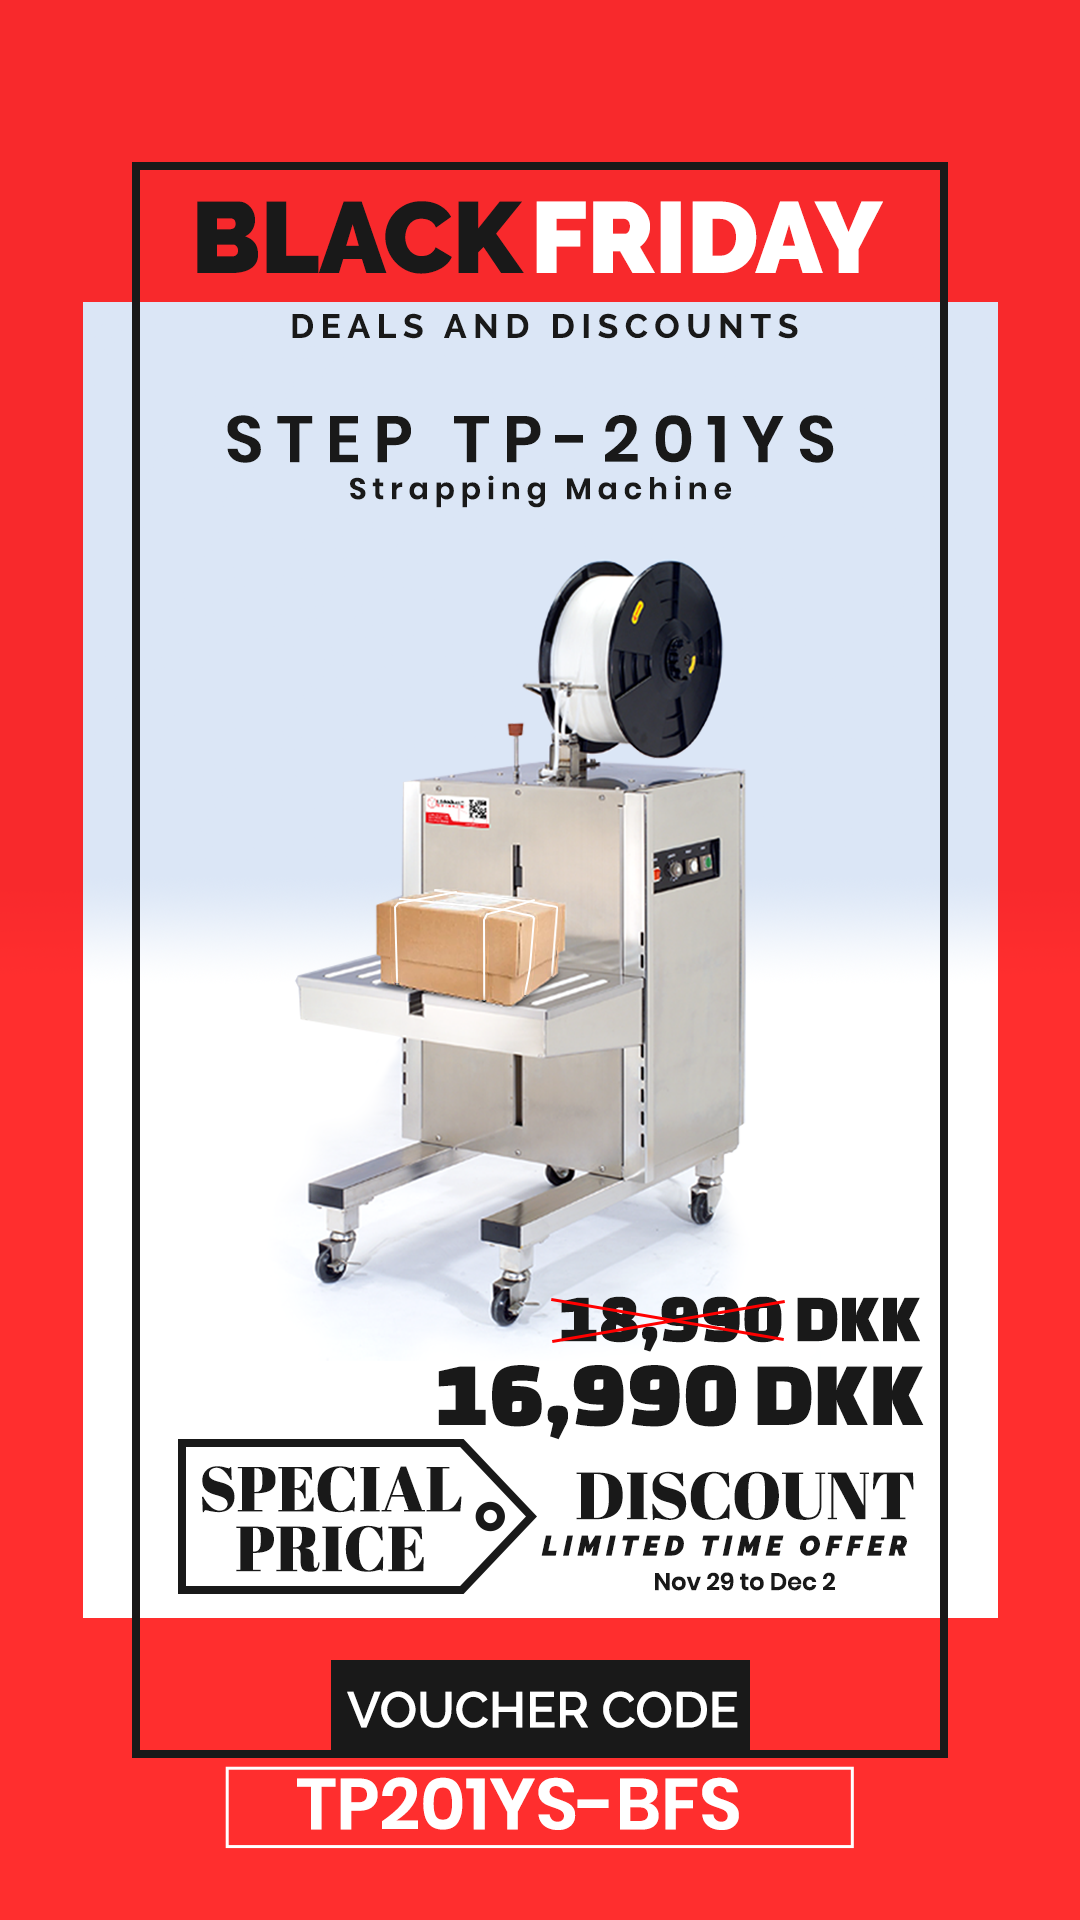 Step Tp 201ys Side Seal Semi Automatic Strapping Machine Locker Storage Automatic Black Friday 2019